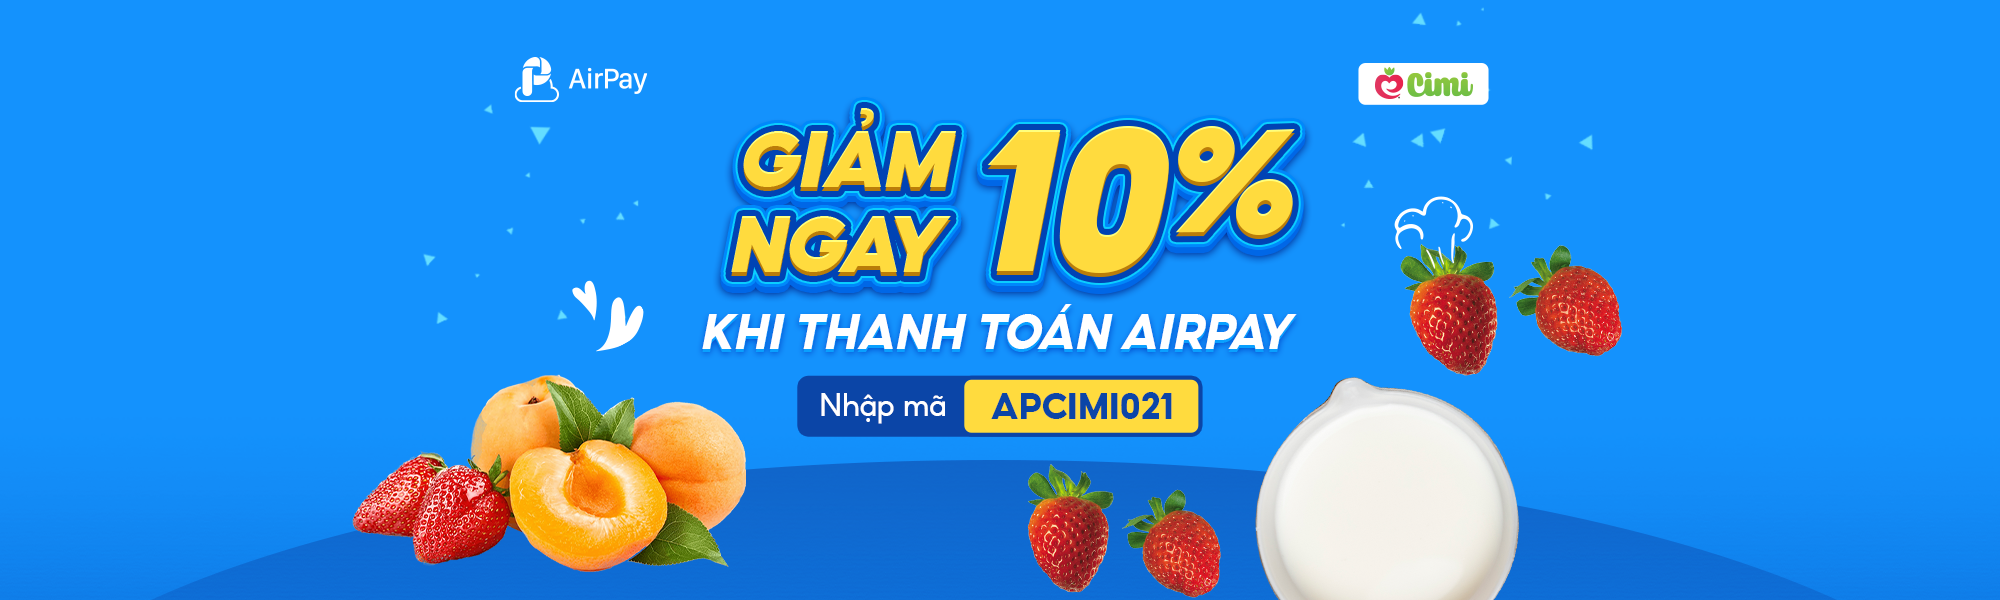 AirPay-Cimi-promotion